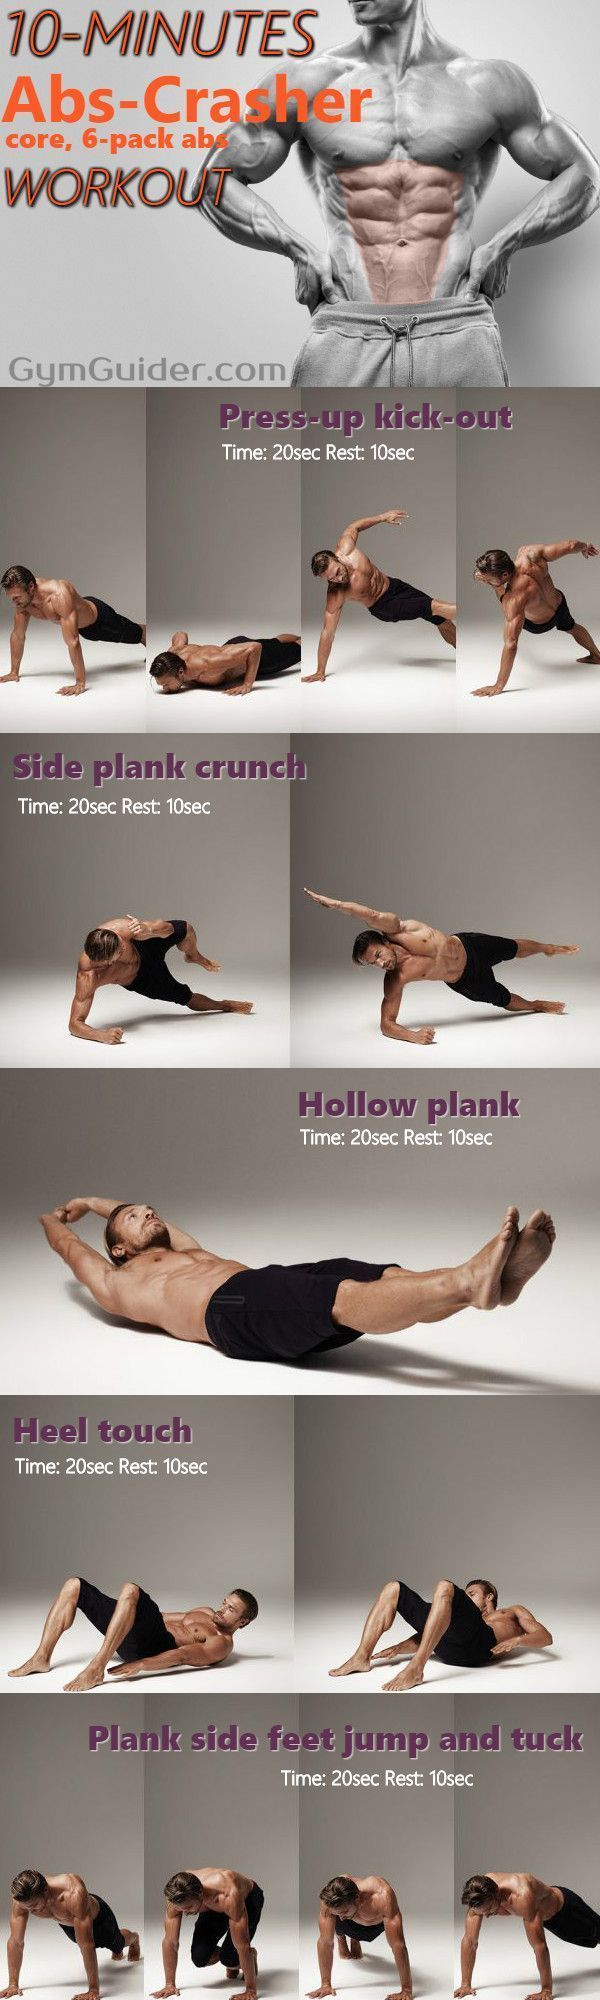 10 Minute Home Bodyweight Abs Crusher Workout - GymGuider.com        10 Minute Home Bodyweight Abs C...